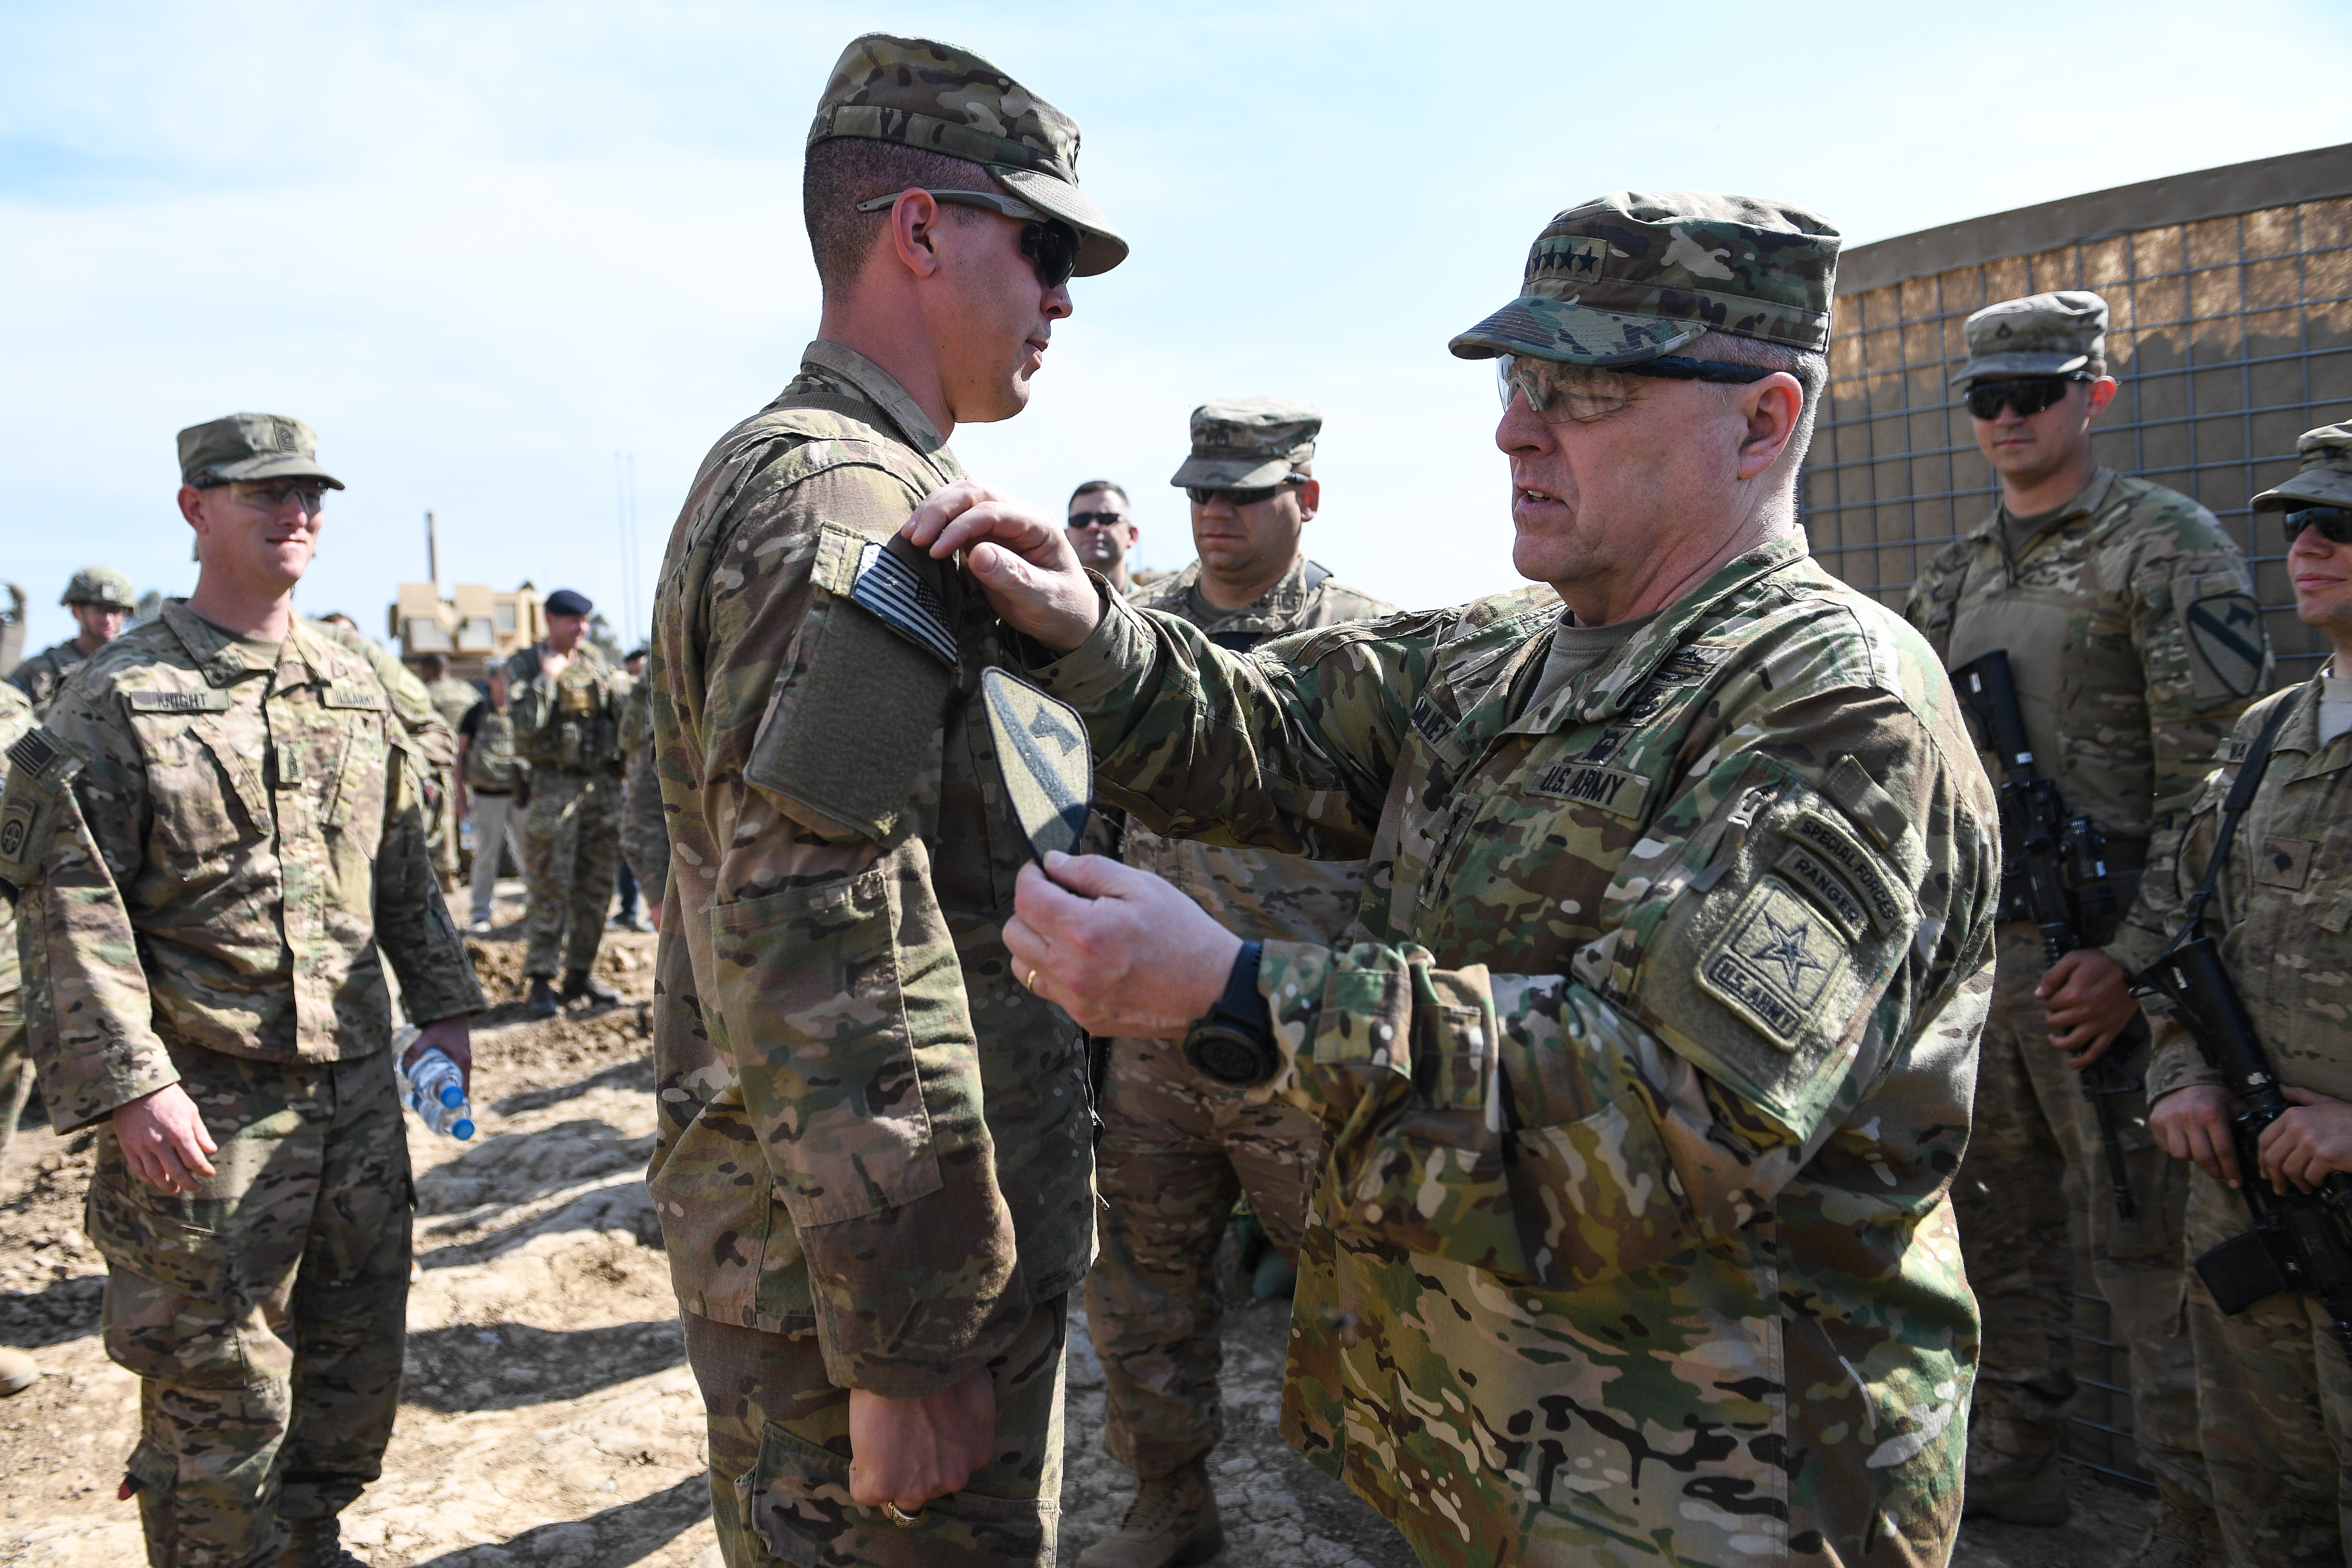 Milley: In future wars, creature comforts are out and disobeying orders is in